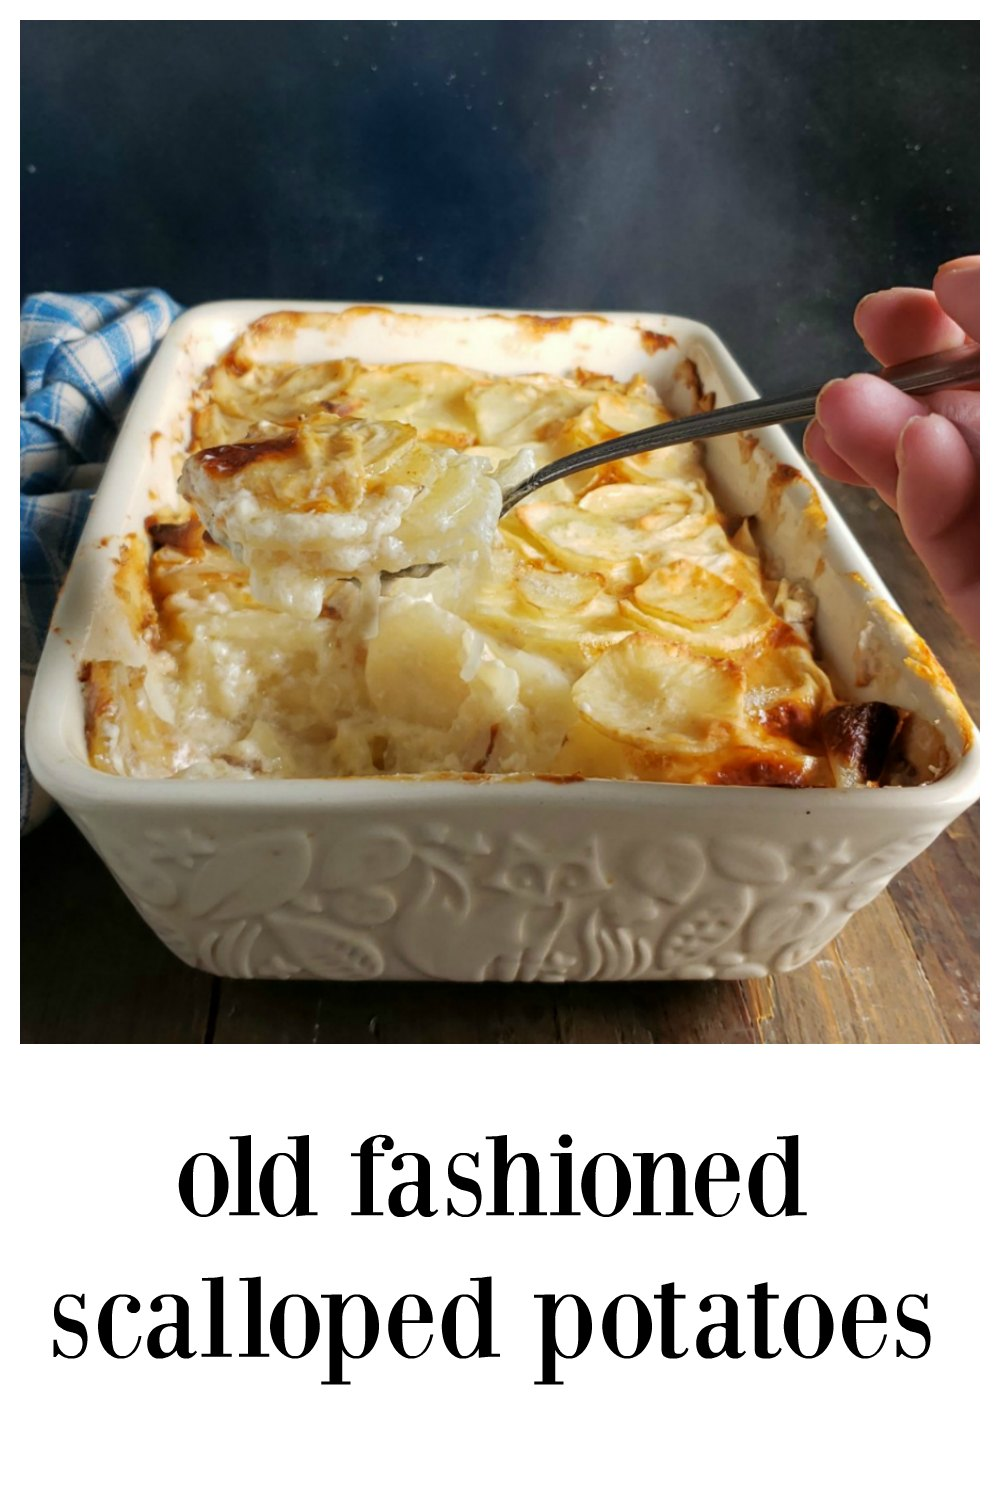 This is really Old Fashioned Scalloped Potatoes, creamy, delish, economical. You might recognize it from the method of sprinkling each layer with flour and dotting with butter. Grandma would approve!